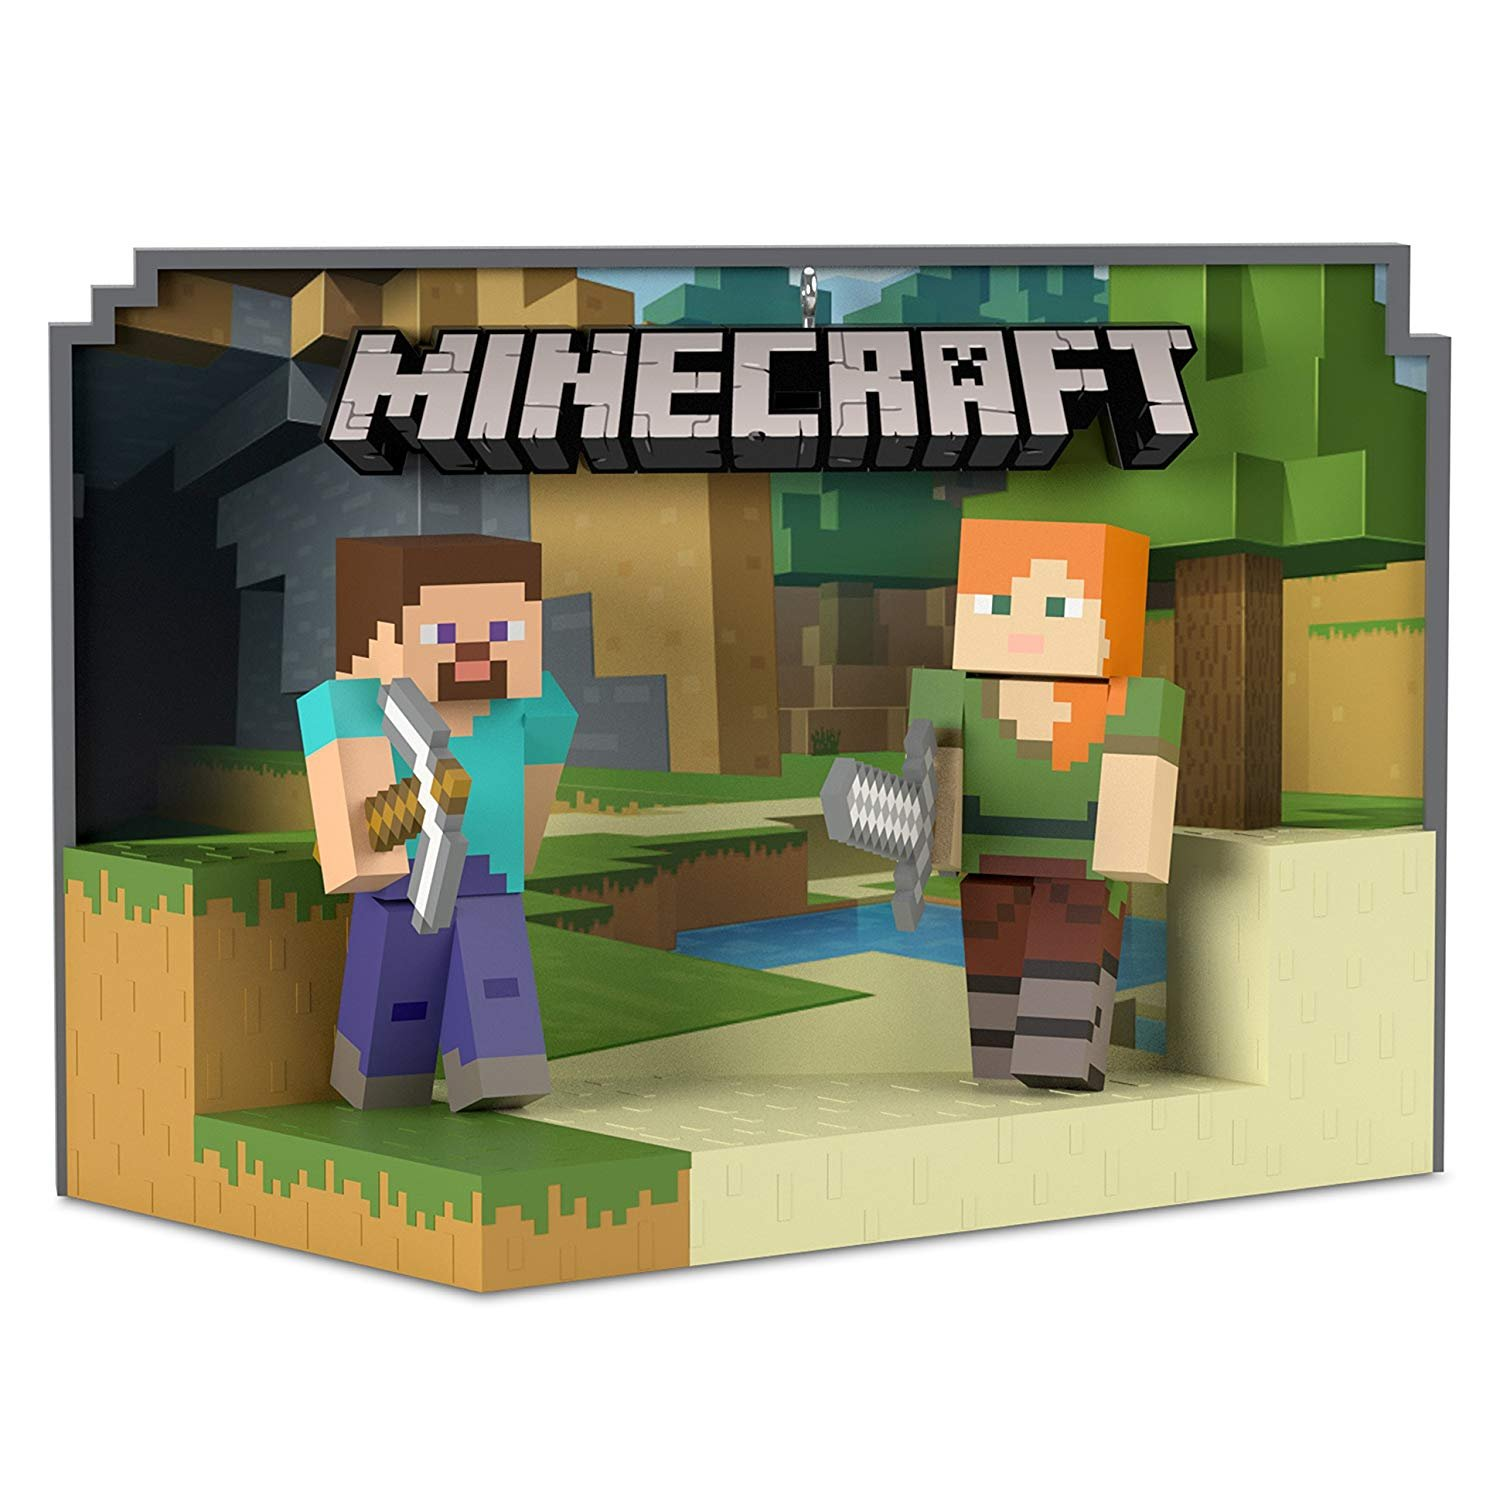 Hallmark Minecraft Steve and Alex Ornament Hobbies & Interests,Teen,Toys & Gaming